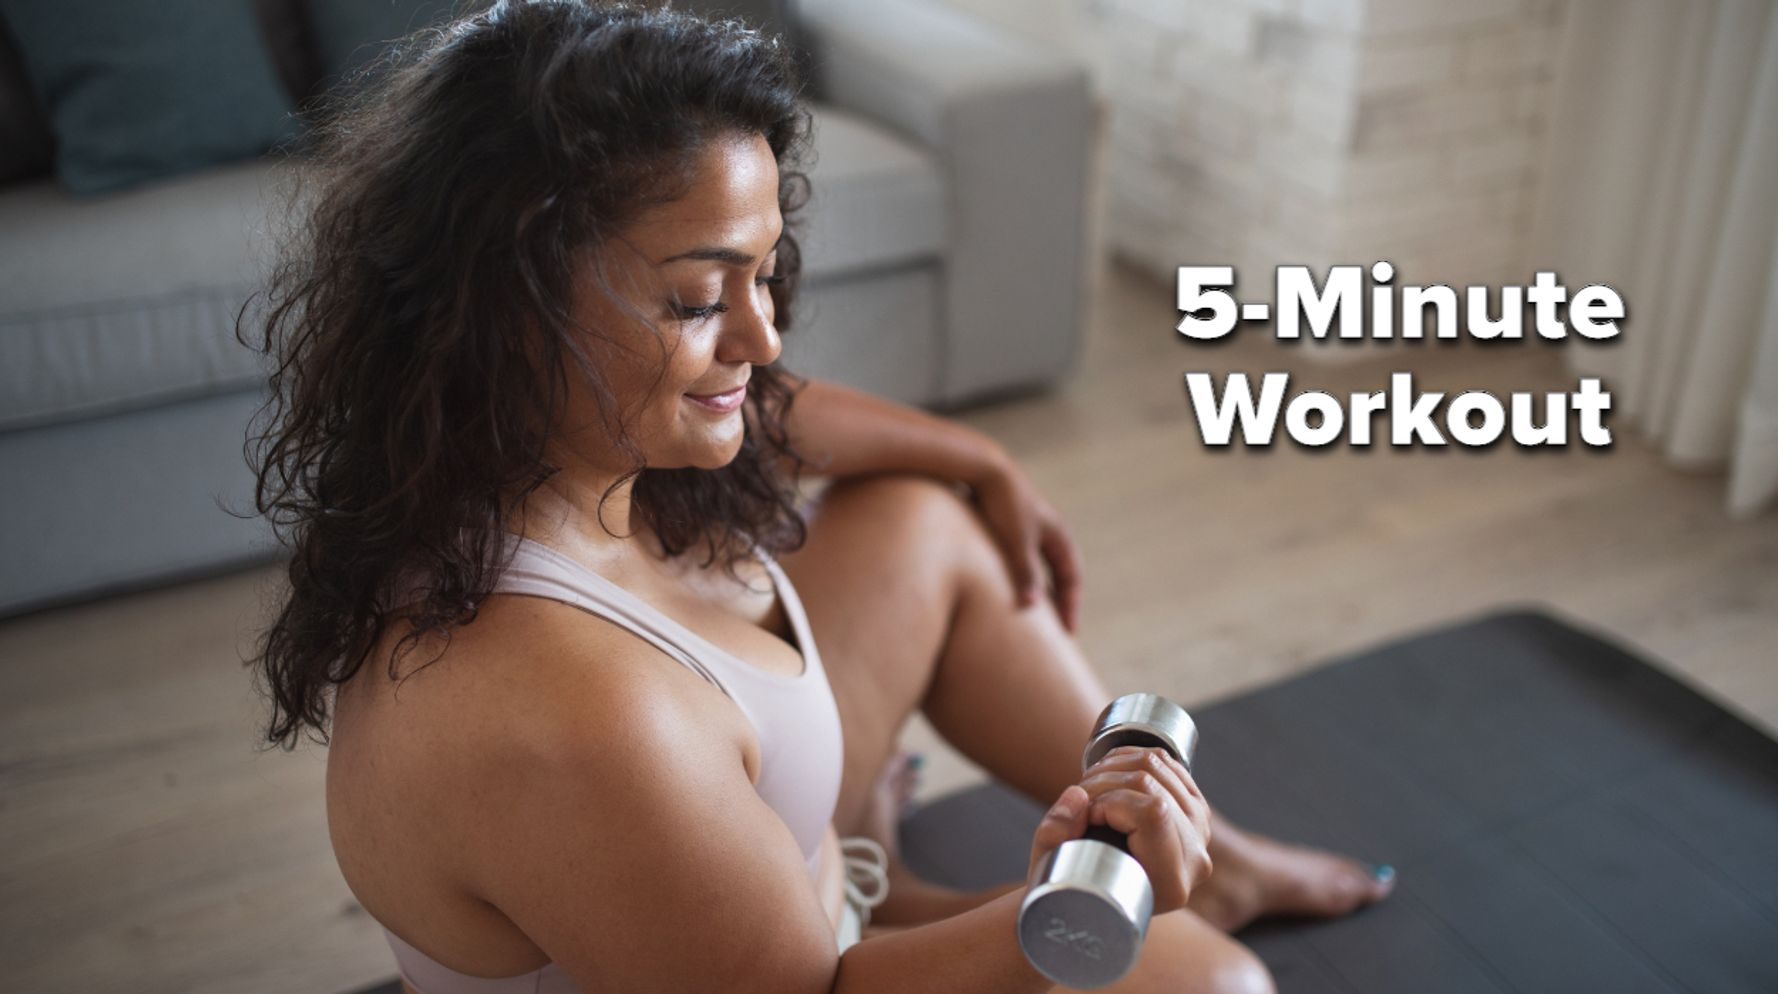 This Workout Will Help You Feel Your Best, Without The Toxic Diet